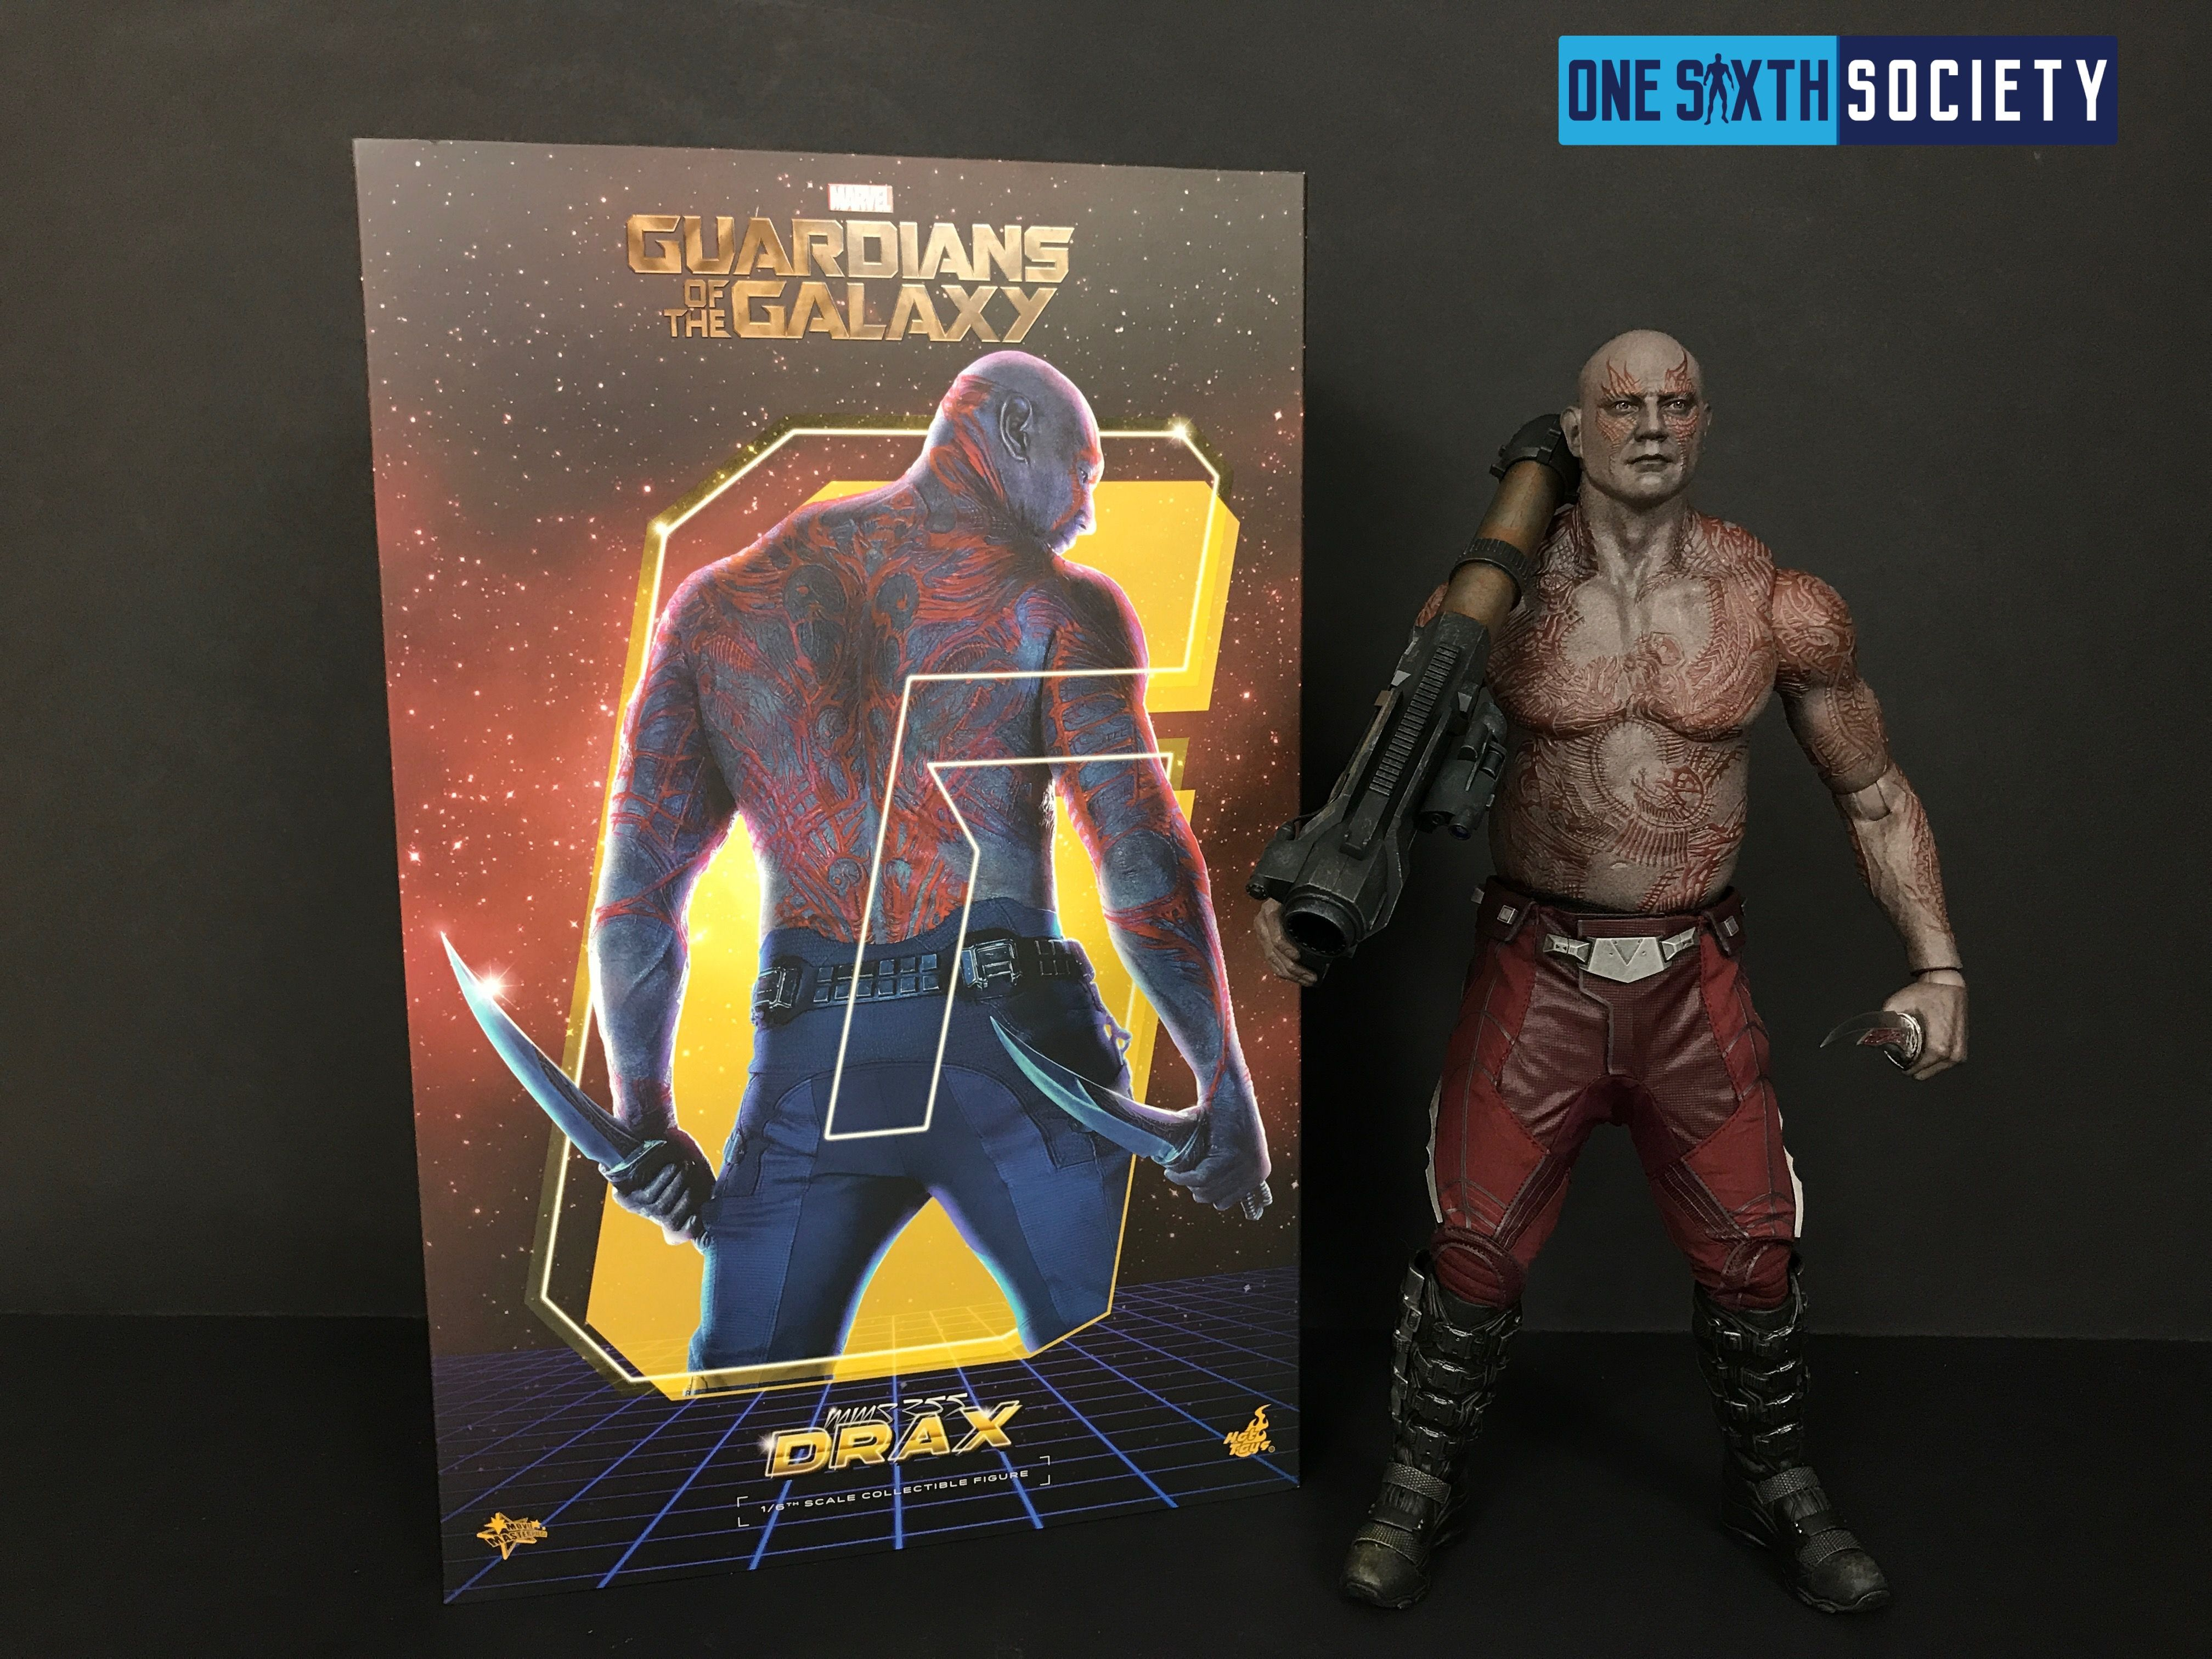 Beautiful Hot Toys Drax Box Art!